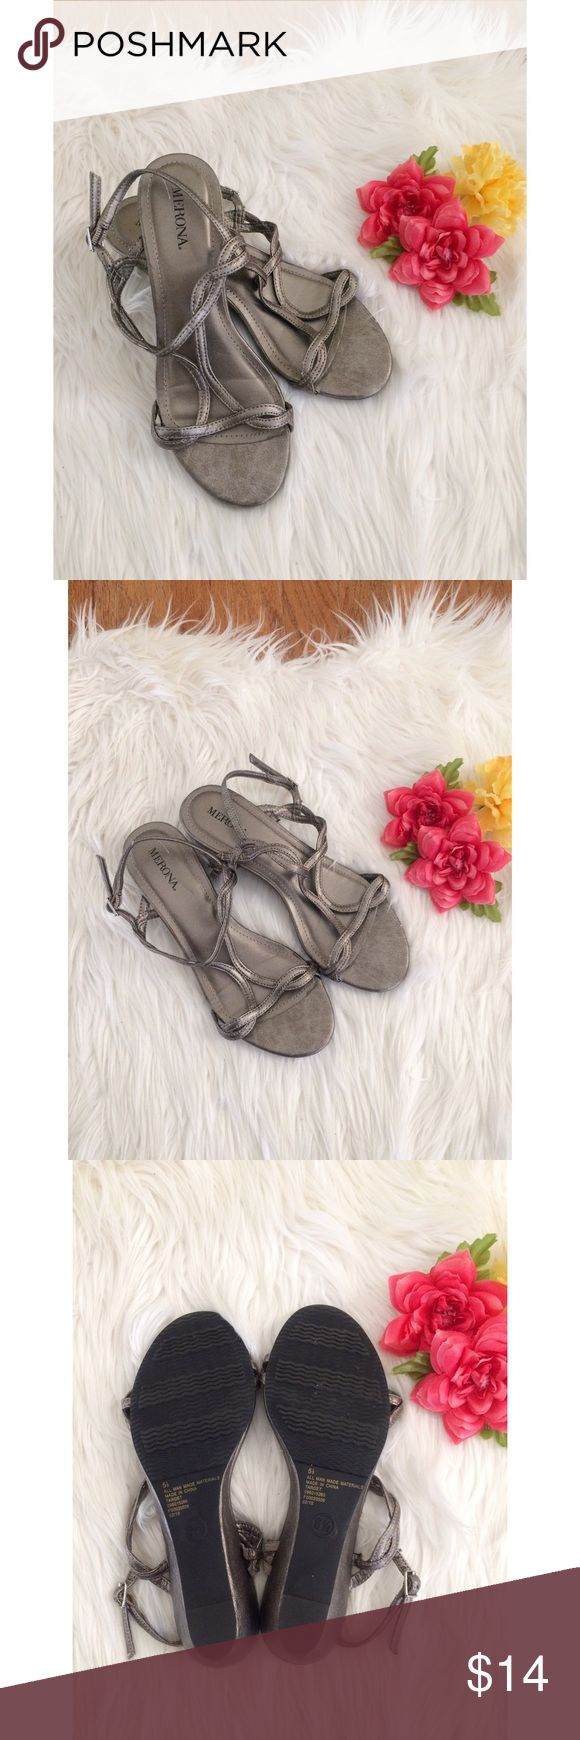 Metallic Silver Strappy Sandals 🌸 Super cute pair of sandals by Merona! Metallic silver color with woven strappy details. Super comfy and go great with everything! Worn just once so they're in like new condition! True size 5.5 :) Shoes Sandals